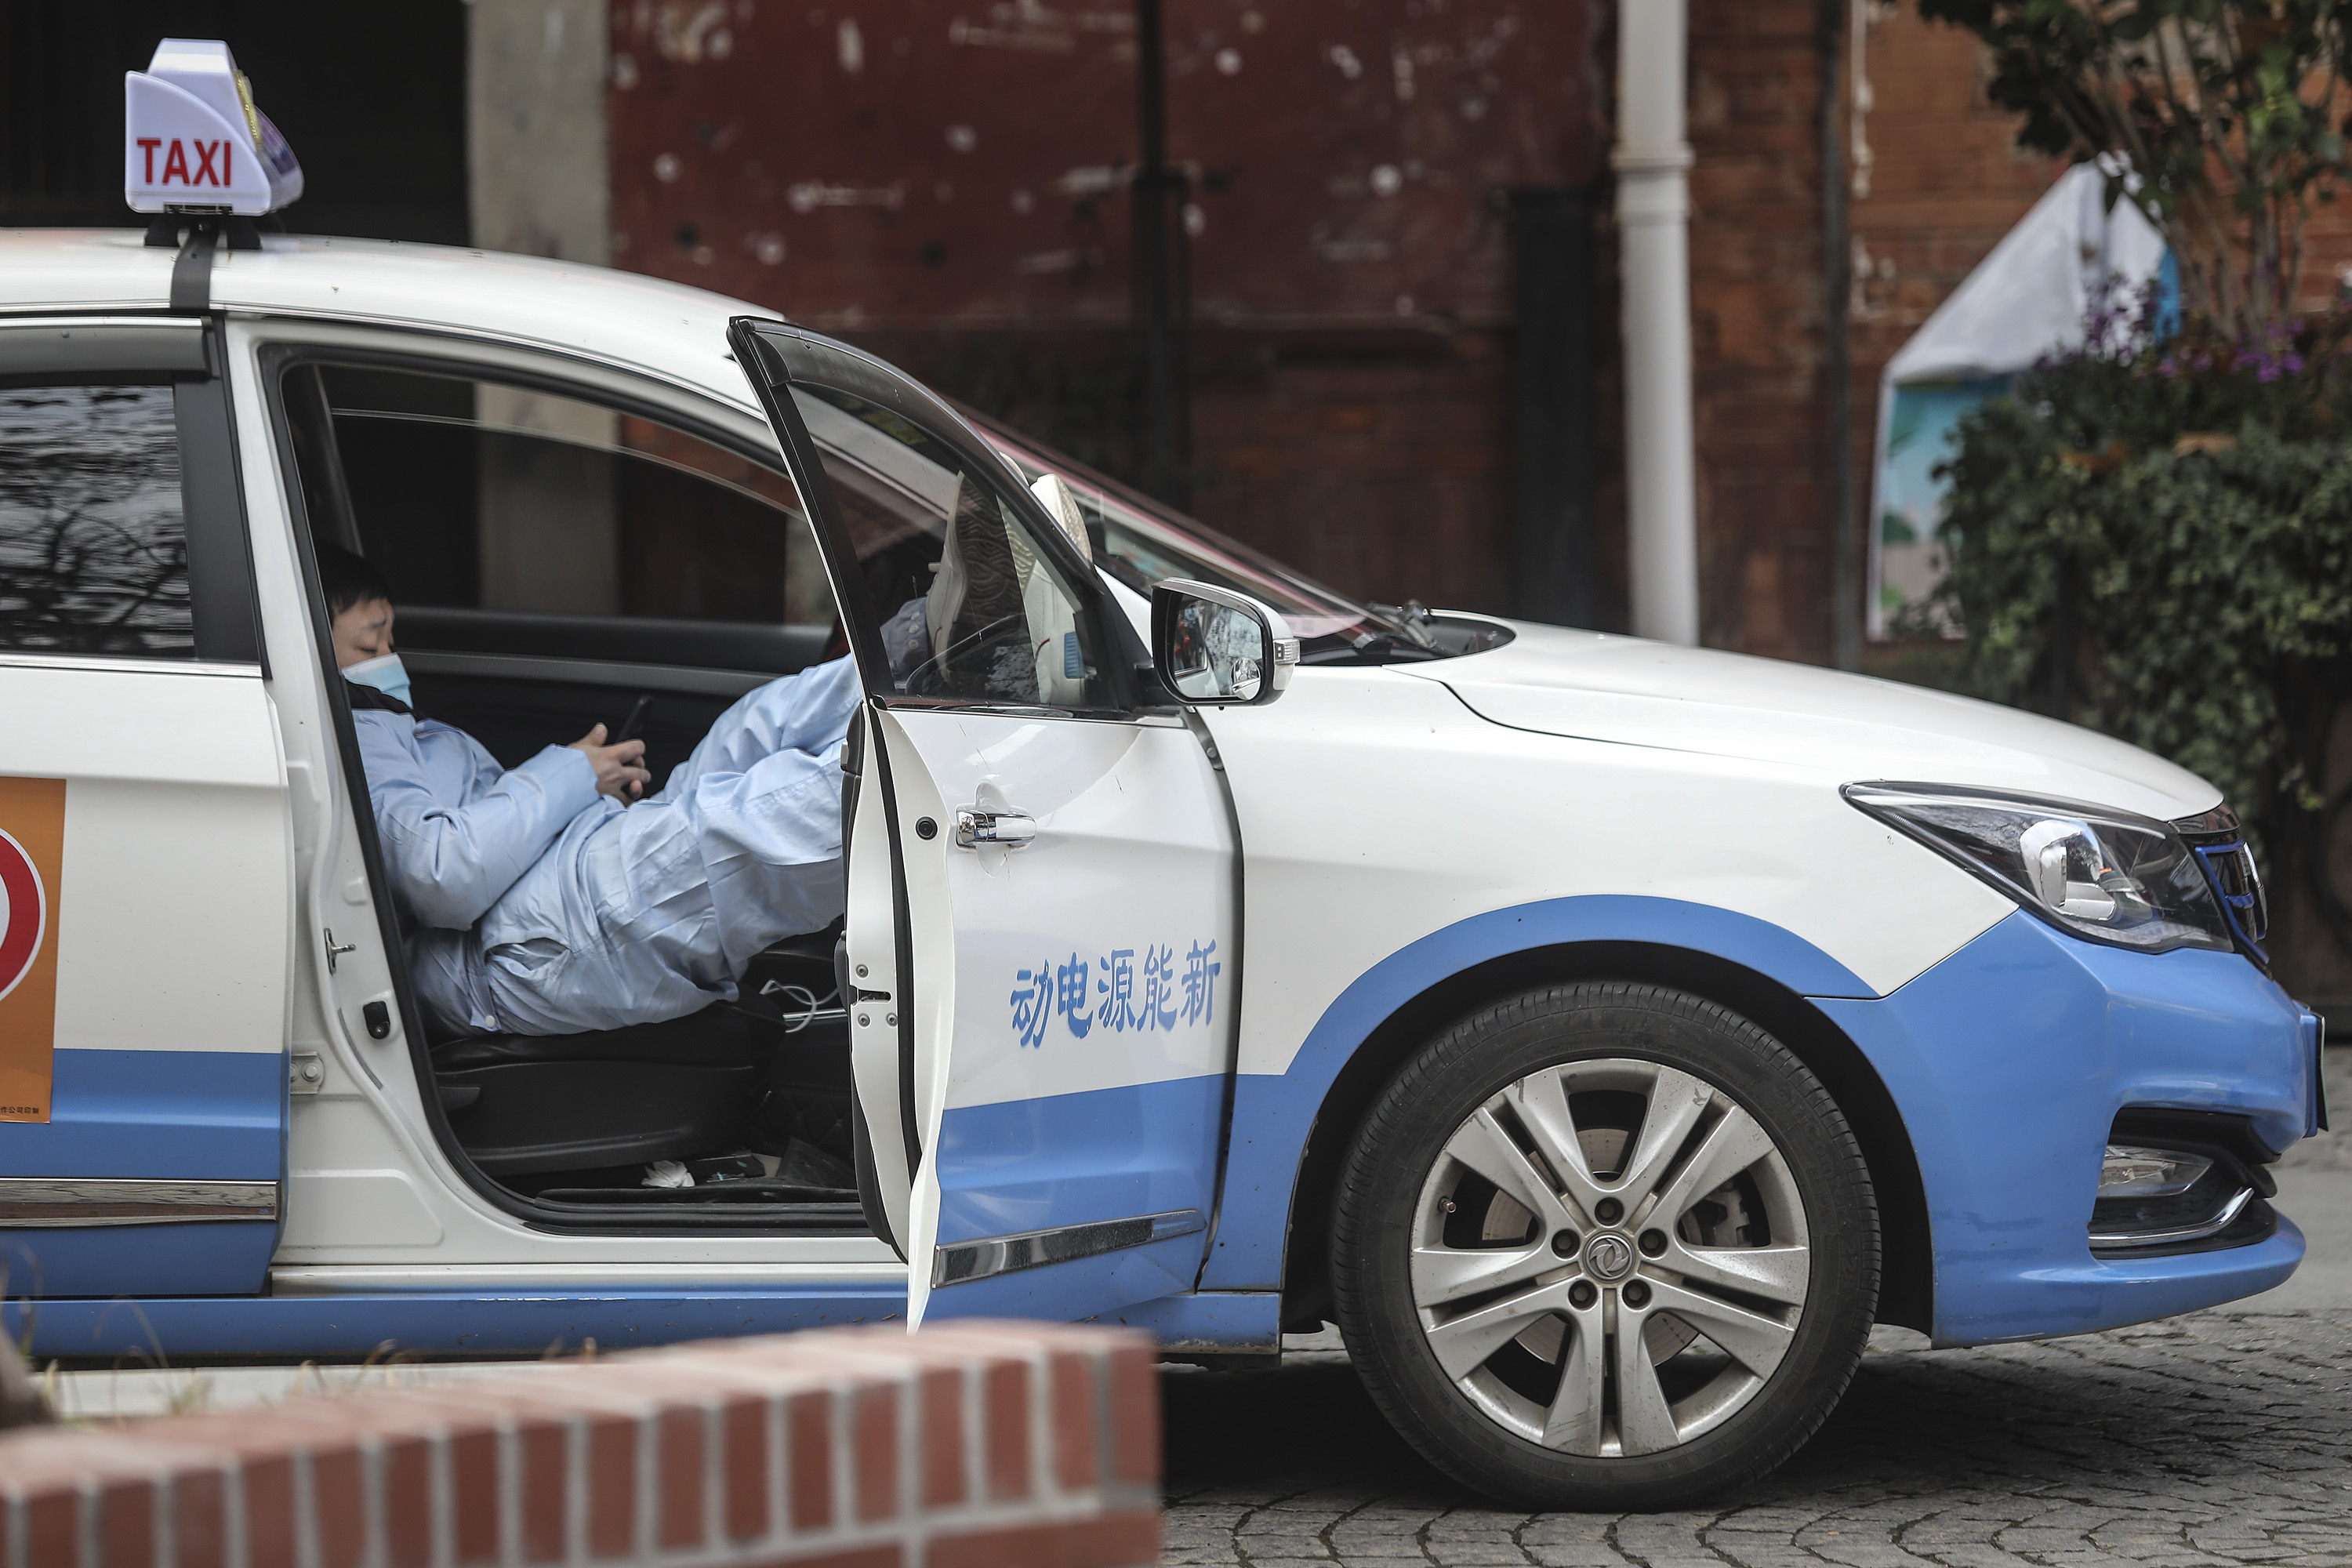 A taxi drivers uses phones in car on February 8, 2020 in Wuhan, Hubei province, China. The number of those who have died from the Wuhan coronavirus, known as 2019-nCoV, in China climbed to 722. (Photo by Getty Images)